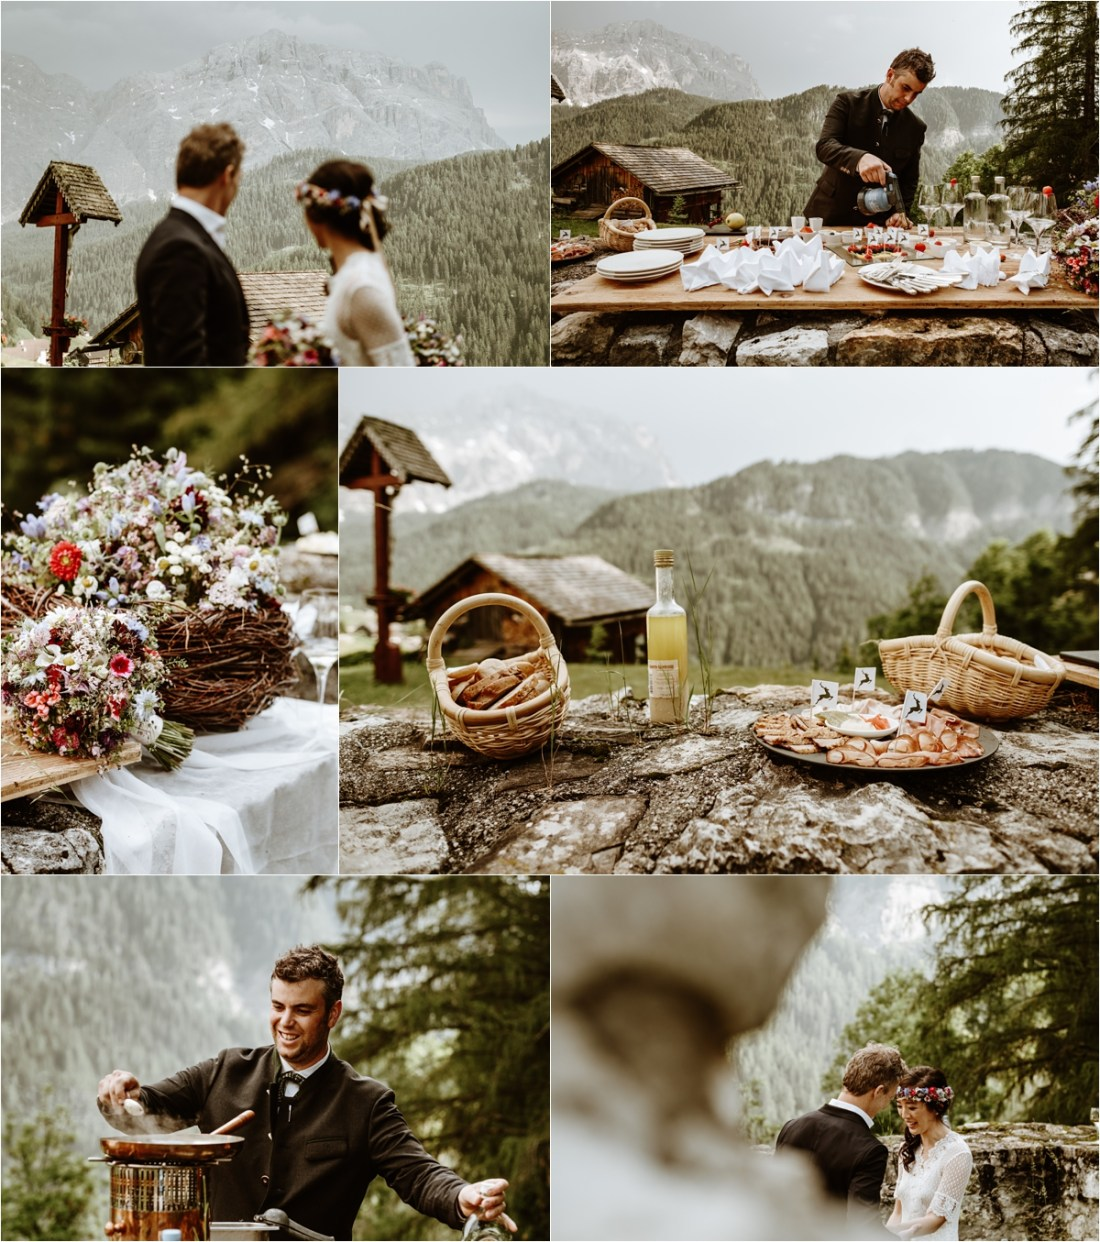 A post-elopement picnic in the Dolomites. Photo by Wild Connections Photography